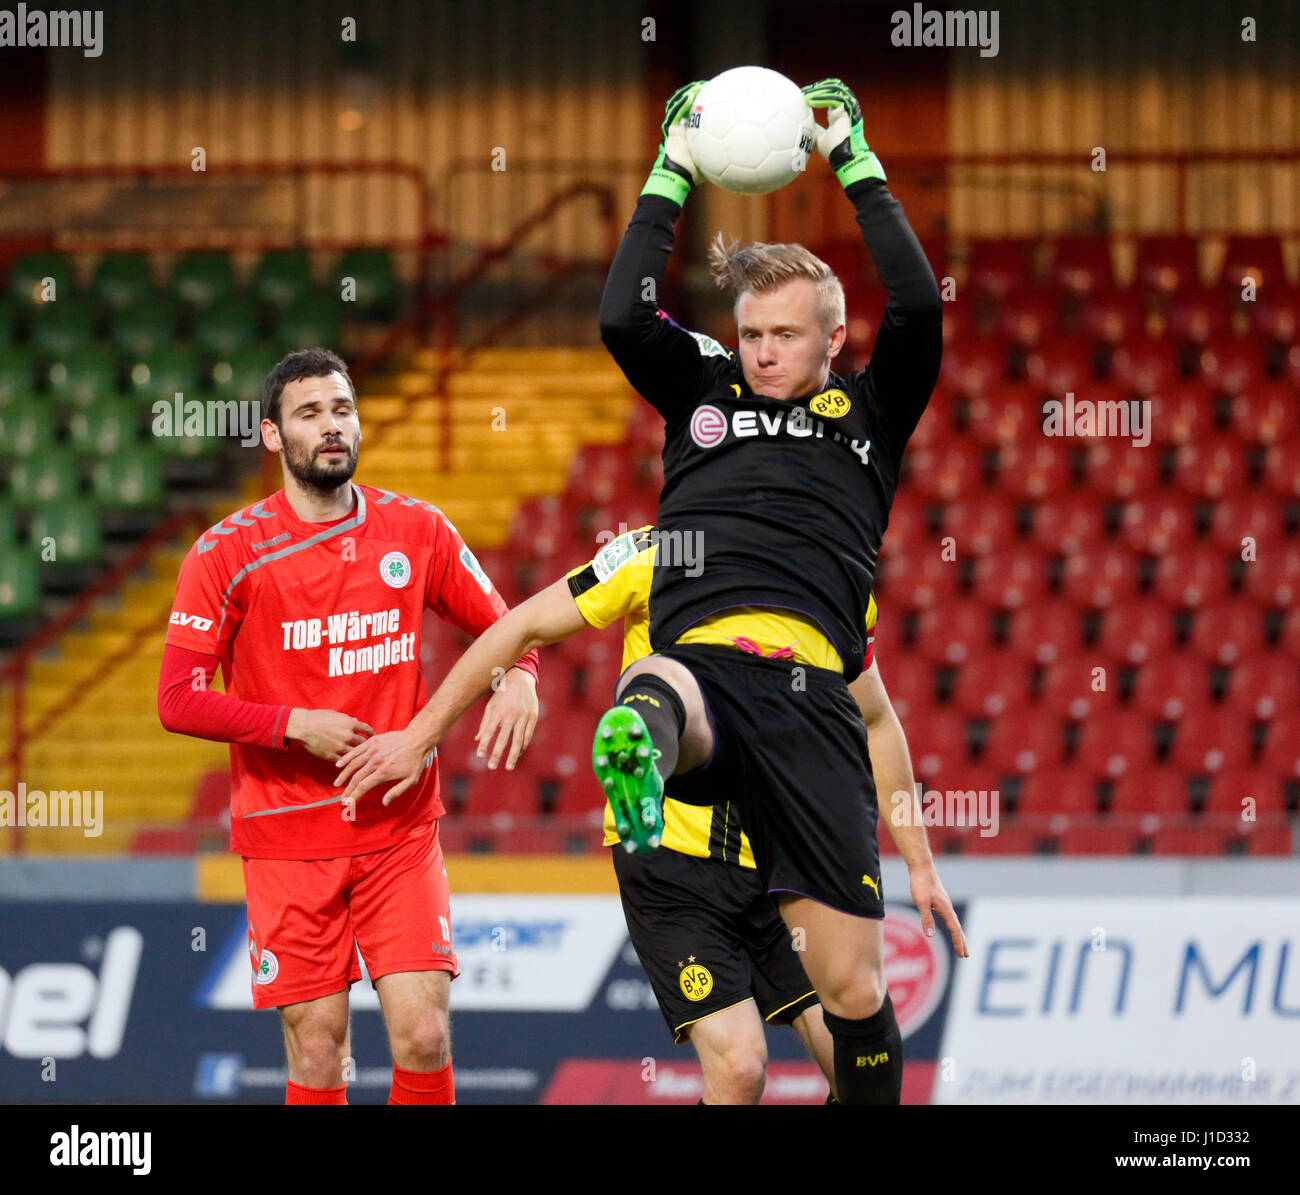 sports, football, Regional League West, 2016/2017, Rot Weiss Oberhausen vs BVB Borussia Dortmund U23 0:0, Stadium - Stock Image